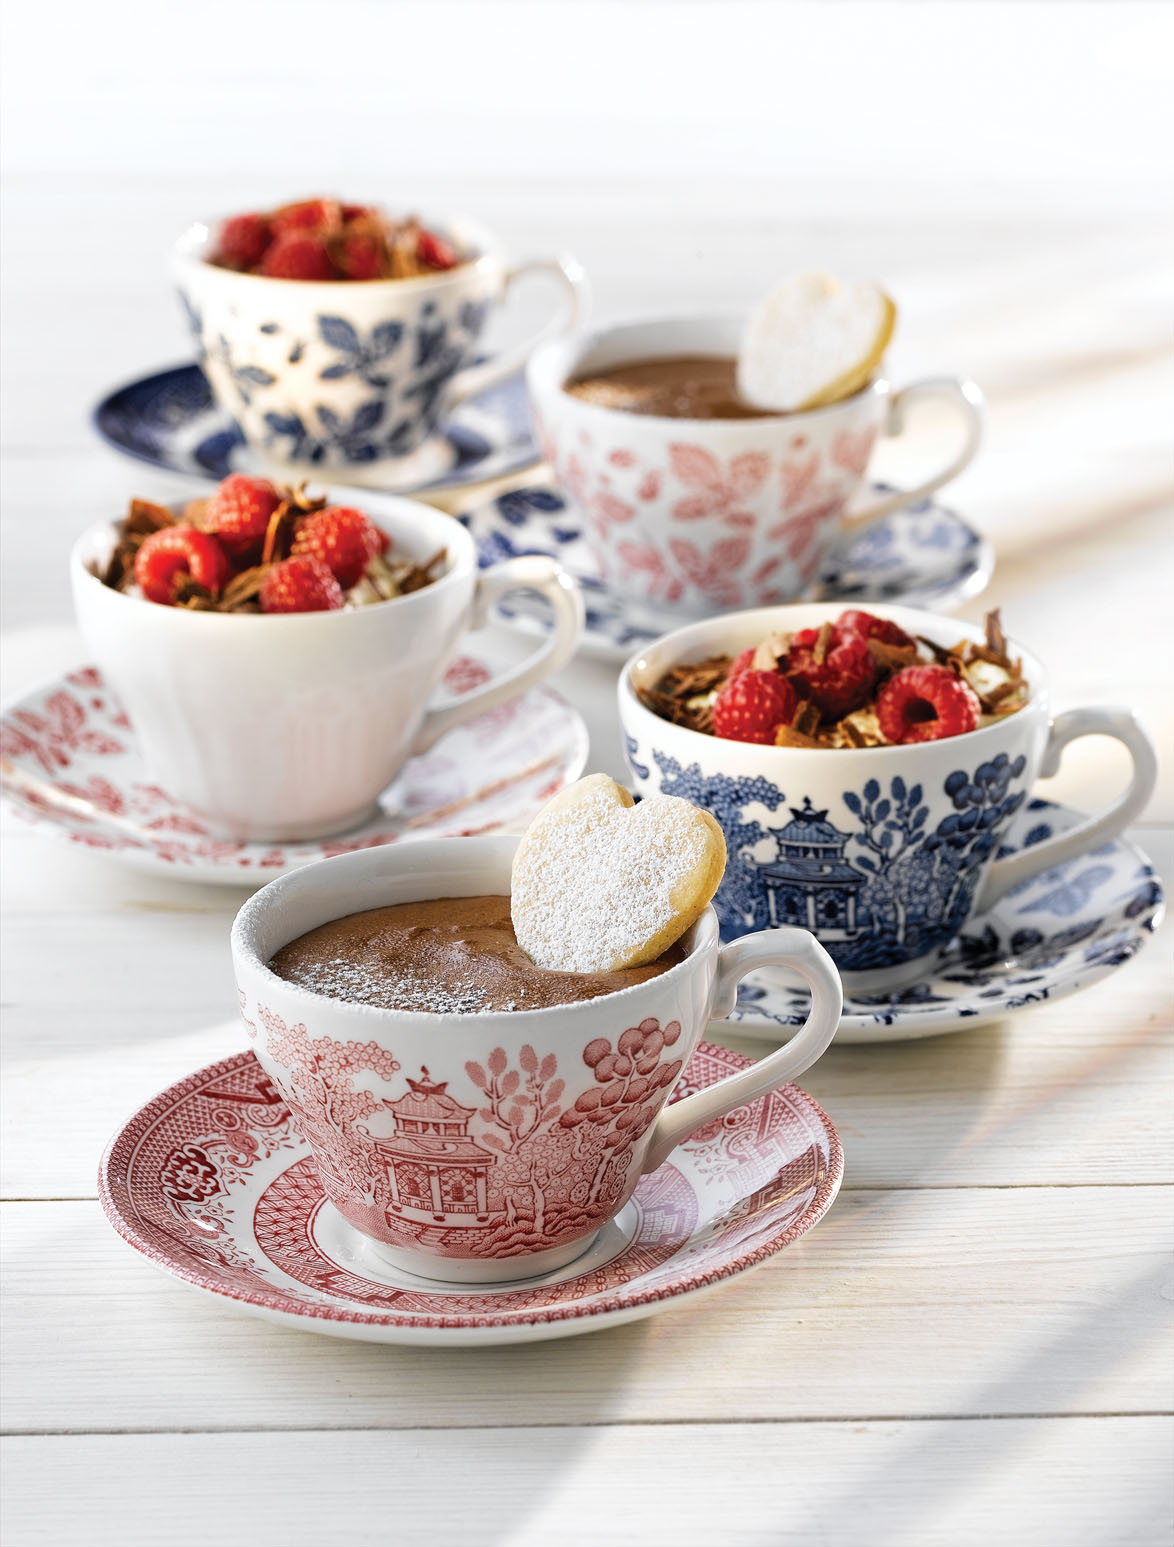 Wholesale Vintage Tea Cups And Saucers - dhgatecom